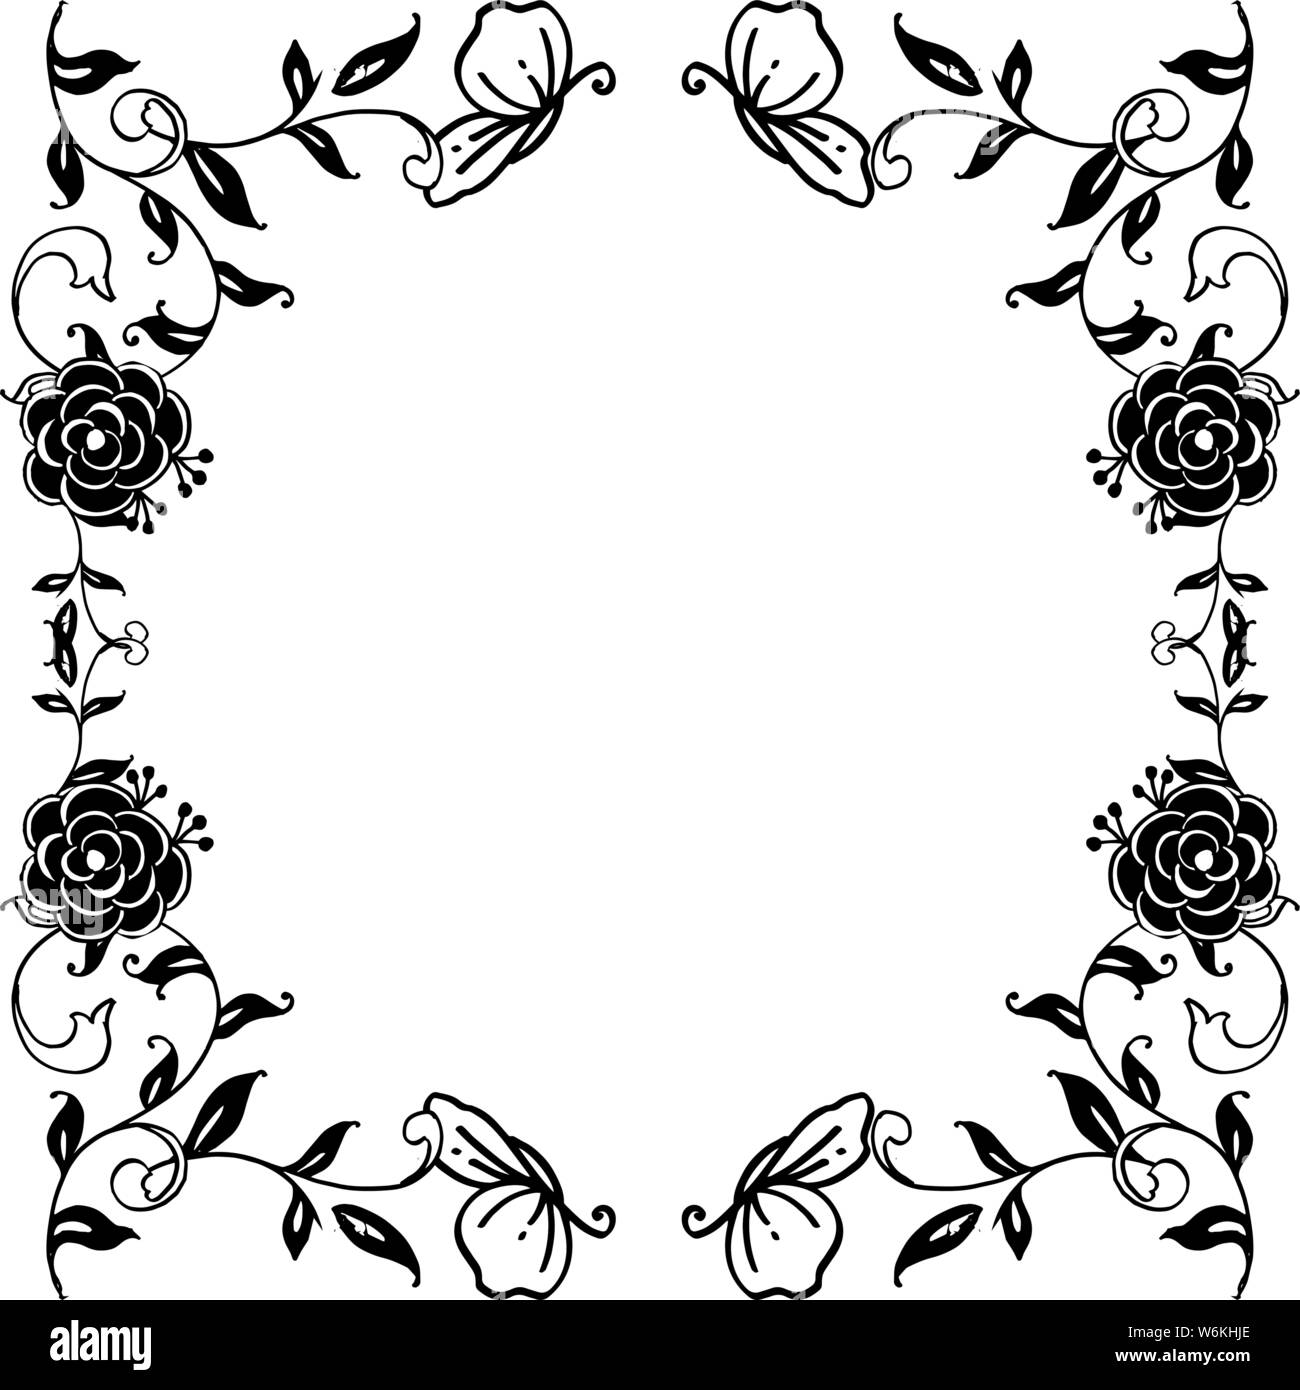 Silhouette Of Black White Flower Frame Ornament Wallpaper